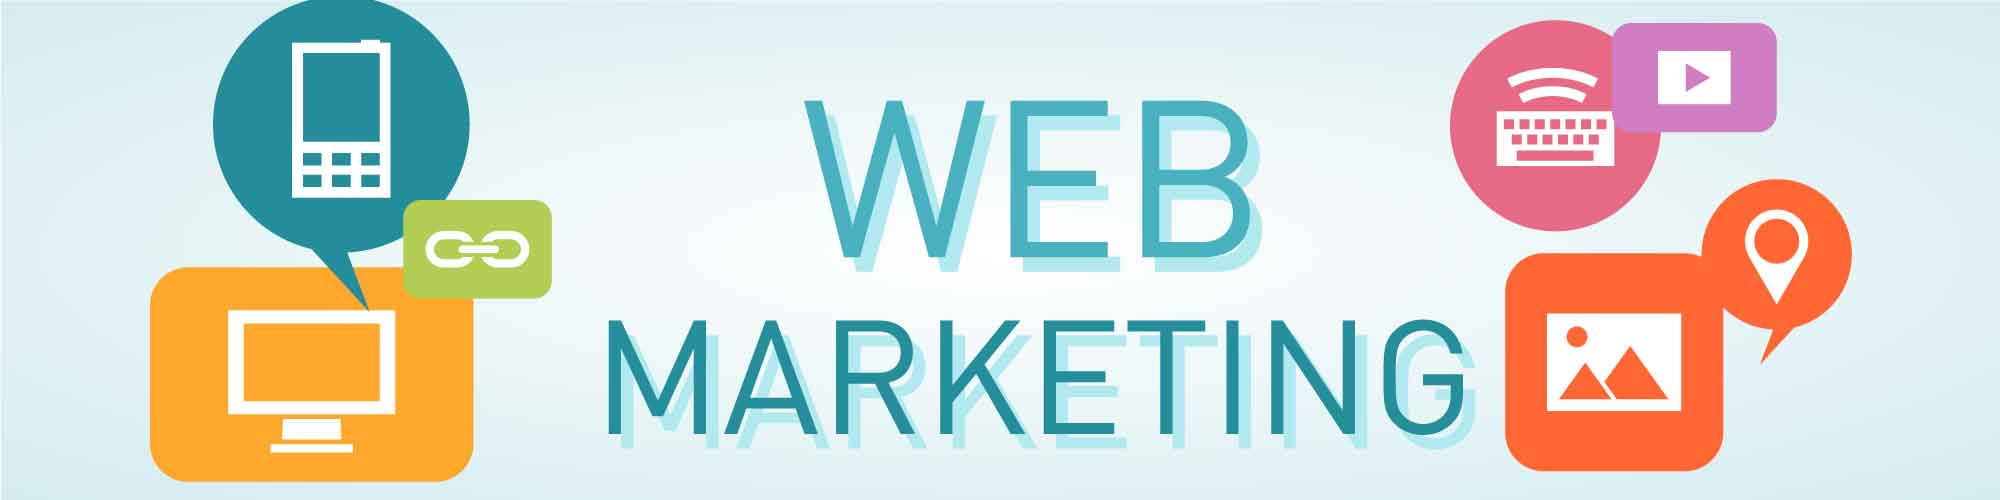 Il futuro del webmarketing.